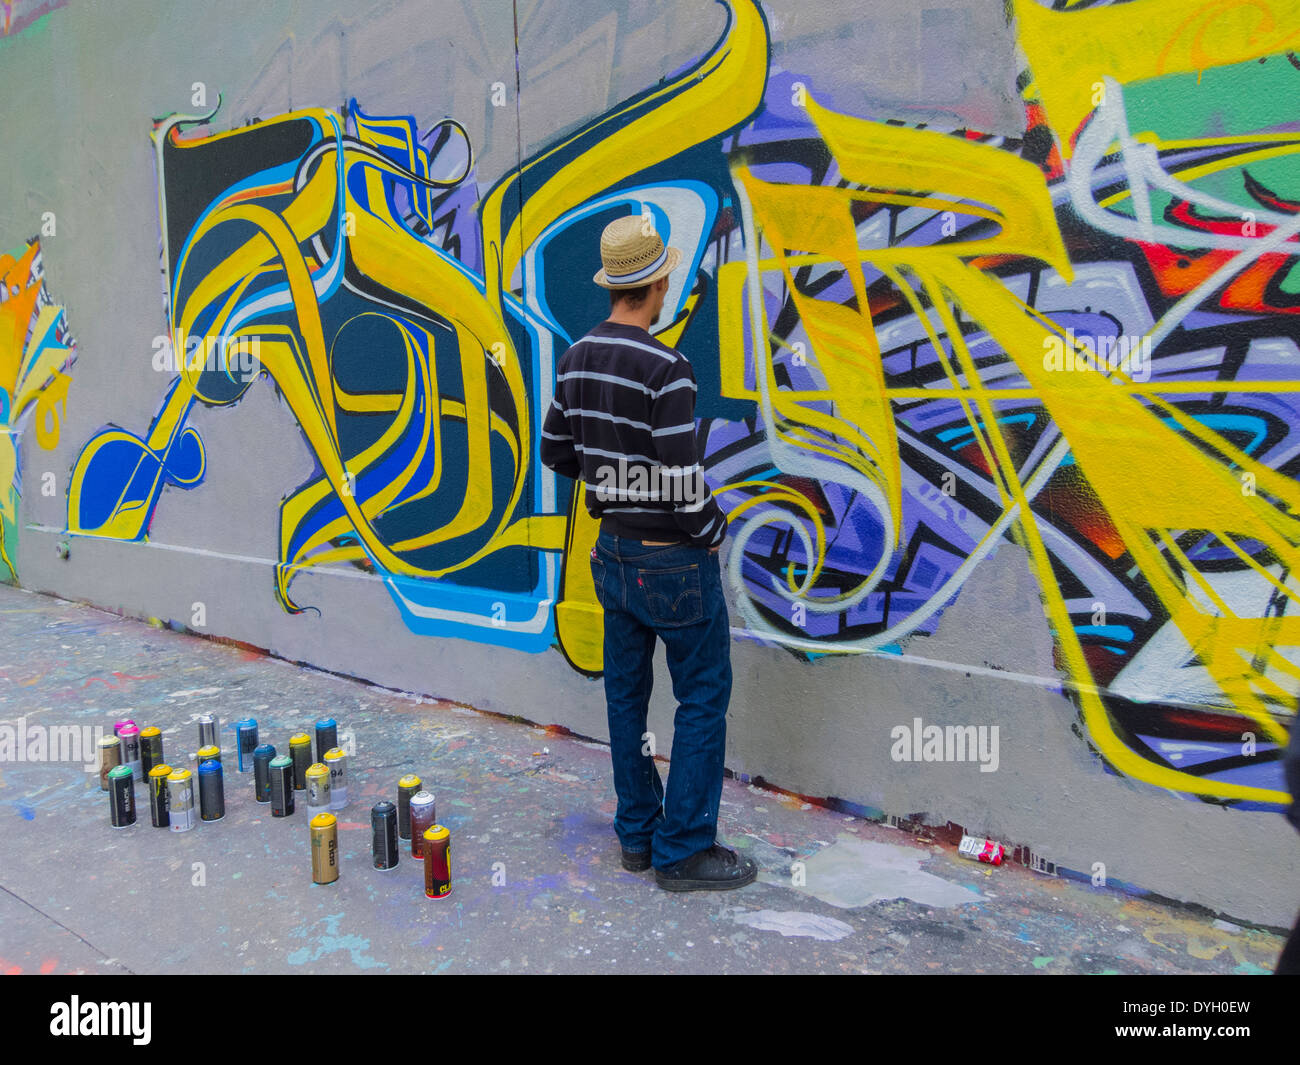 Paris france young french teen graffiti artist painting wall on street modern abstract art